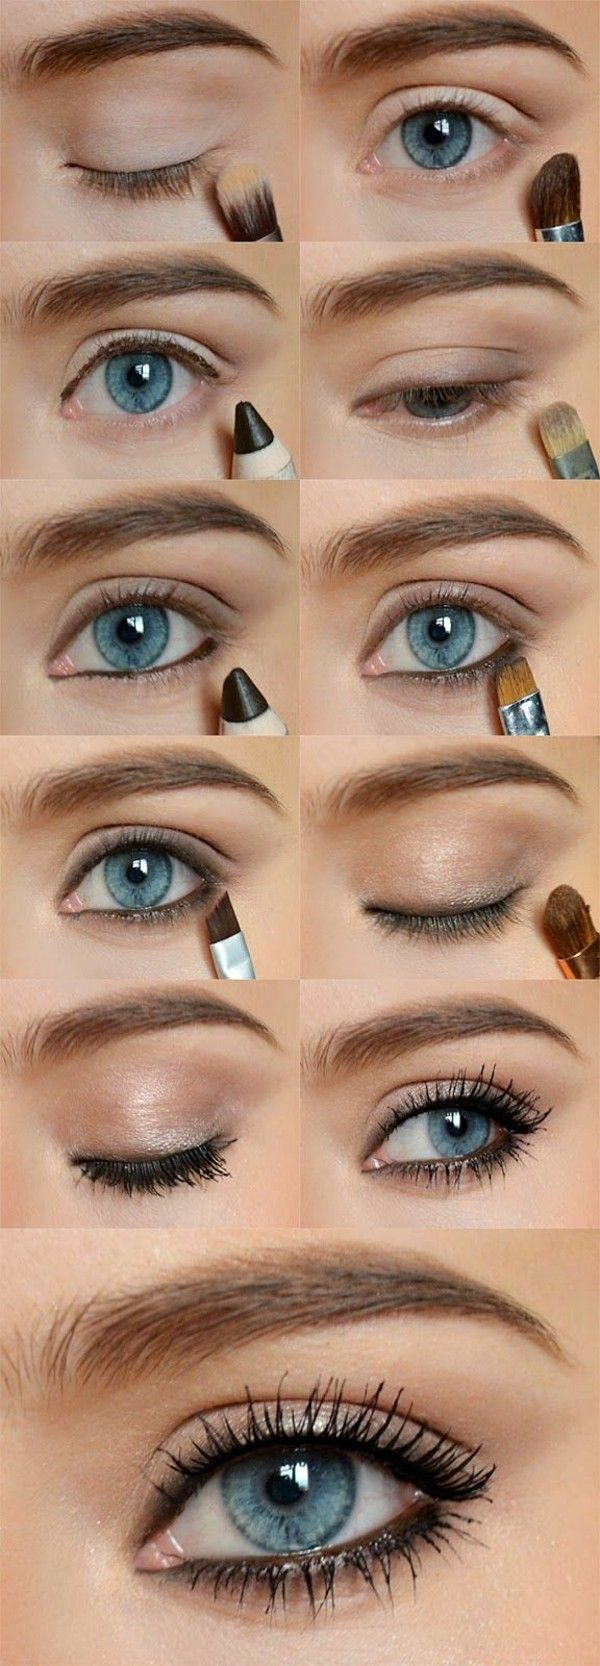 25+ Best Ideas About Applying Eyeshadow On Pinterest